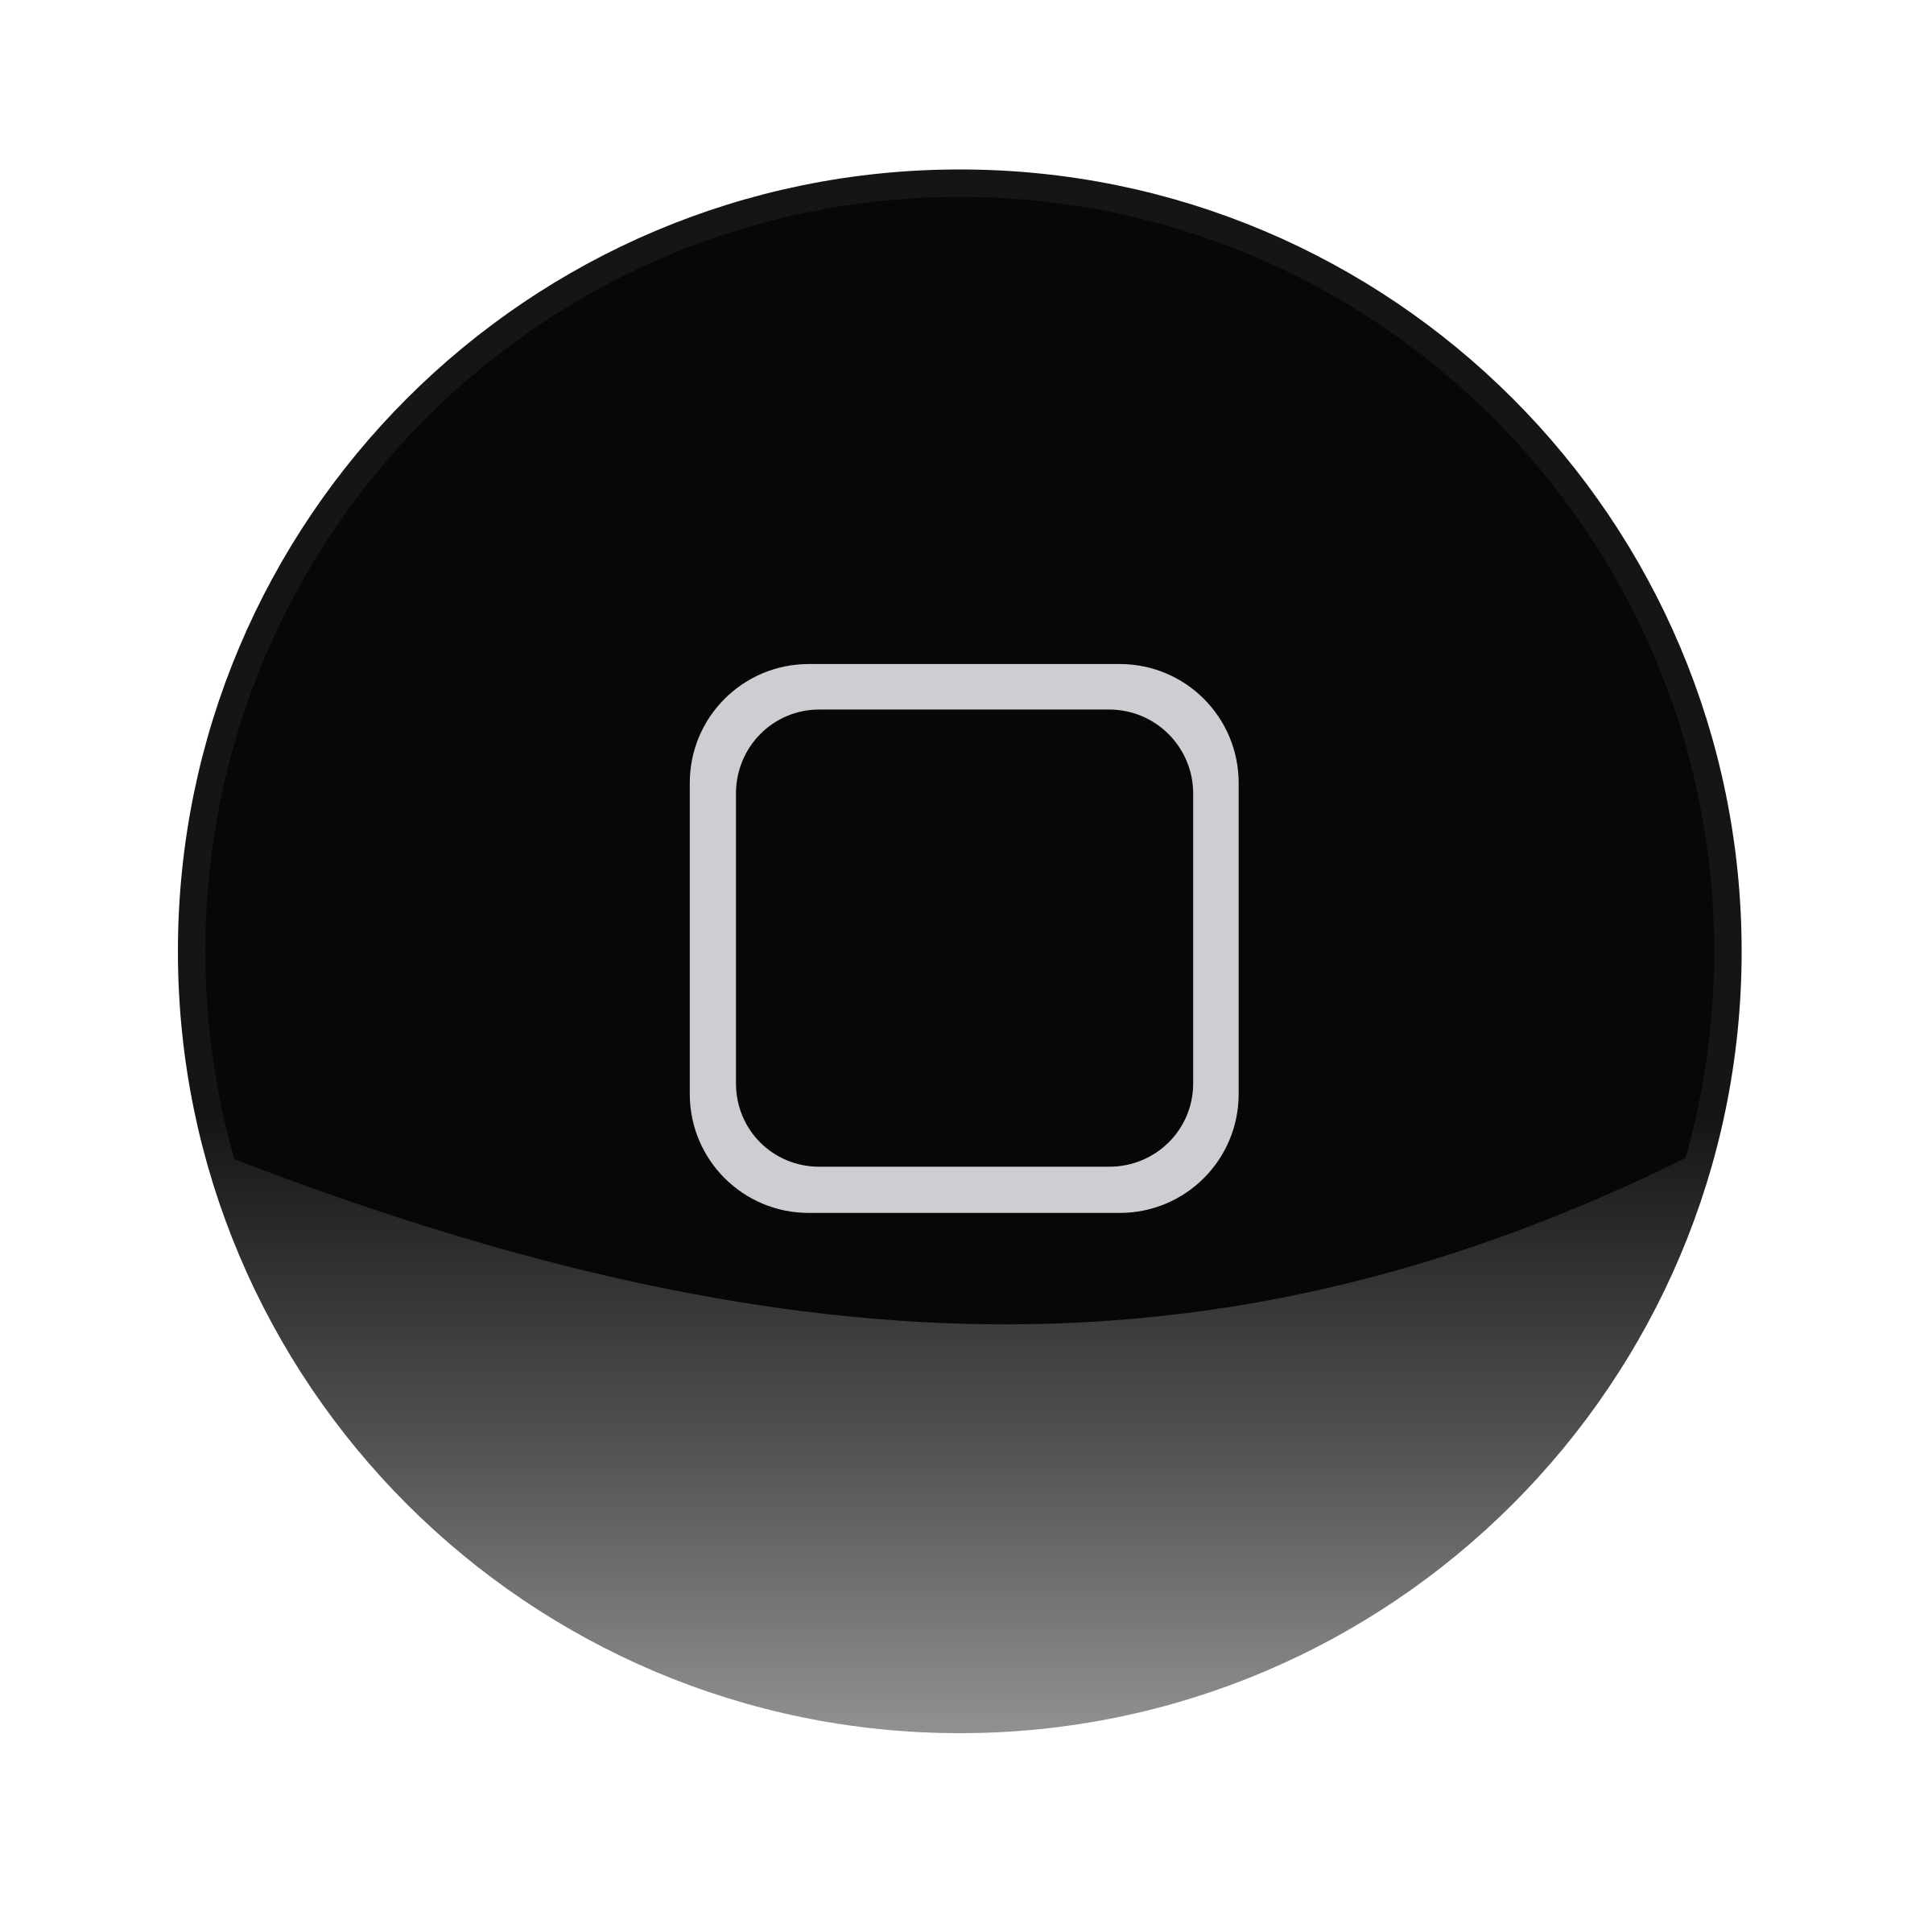 iPhone Home Button by jhnri4